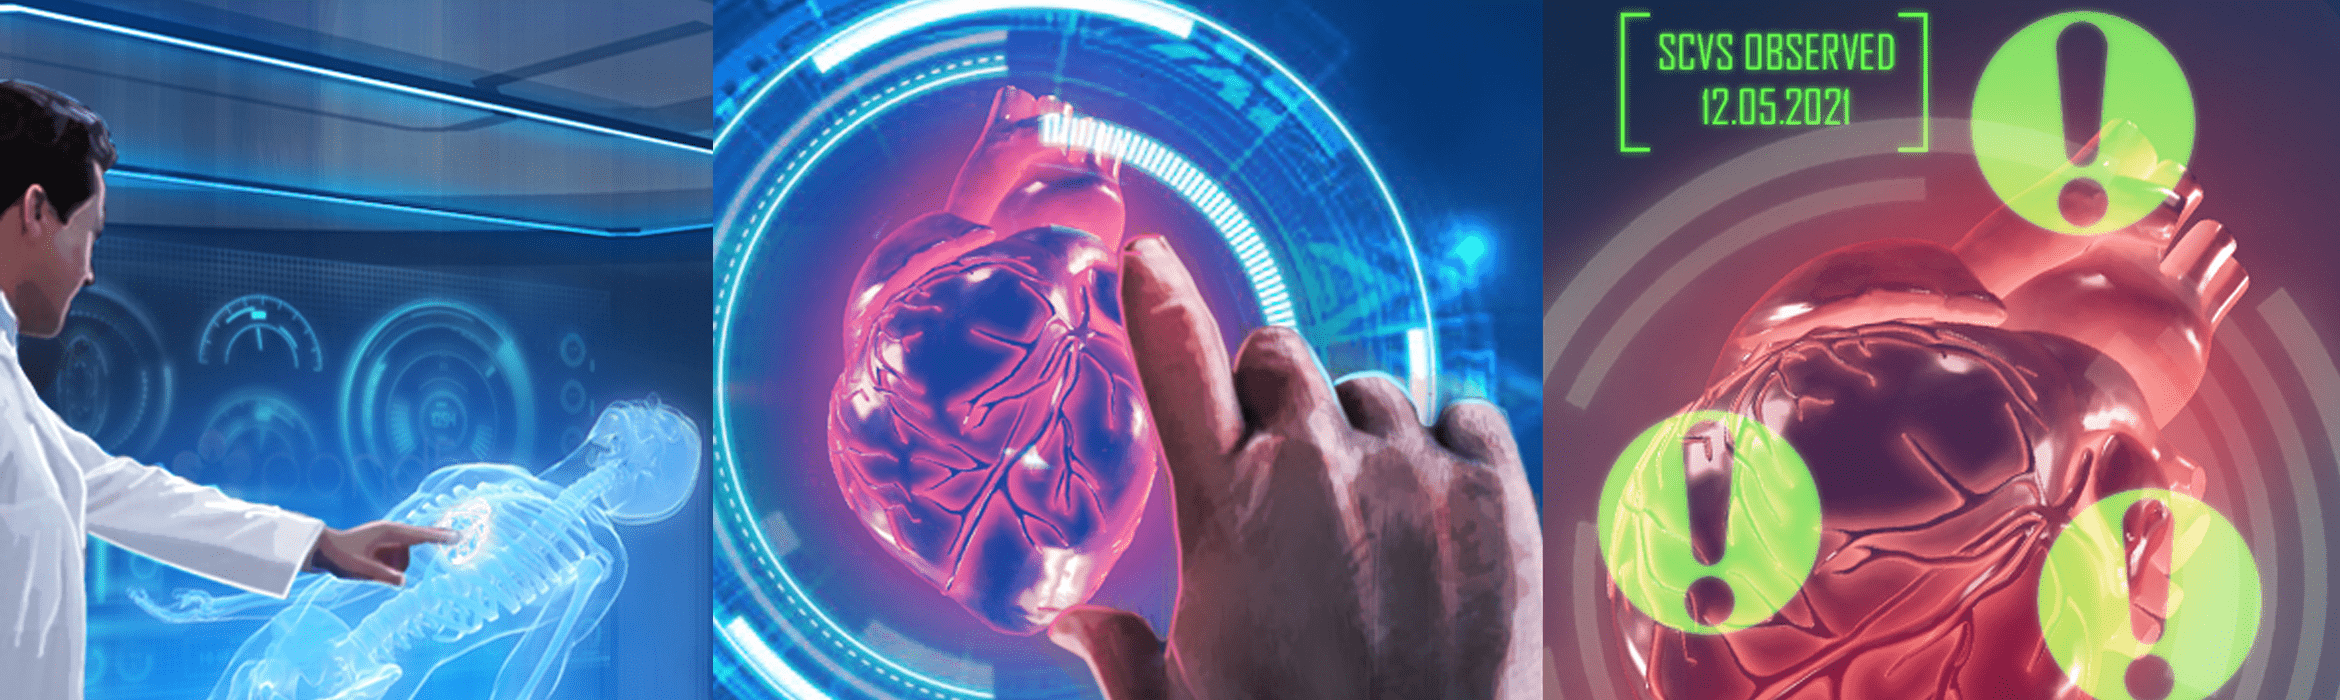 3D printing and holography could benefit doctors and surgeons in hospitals in future.